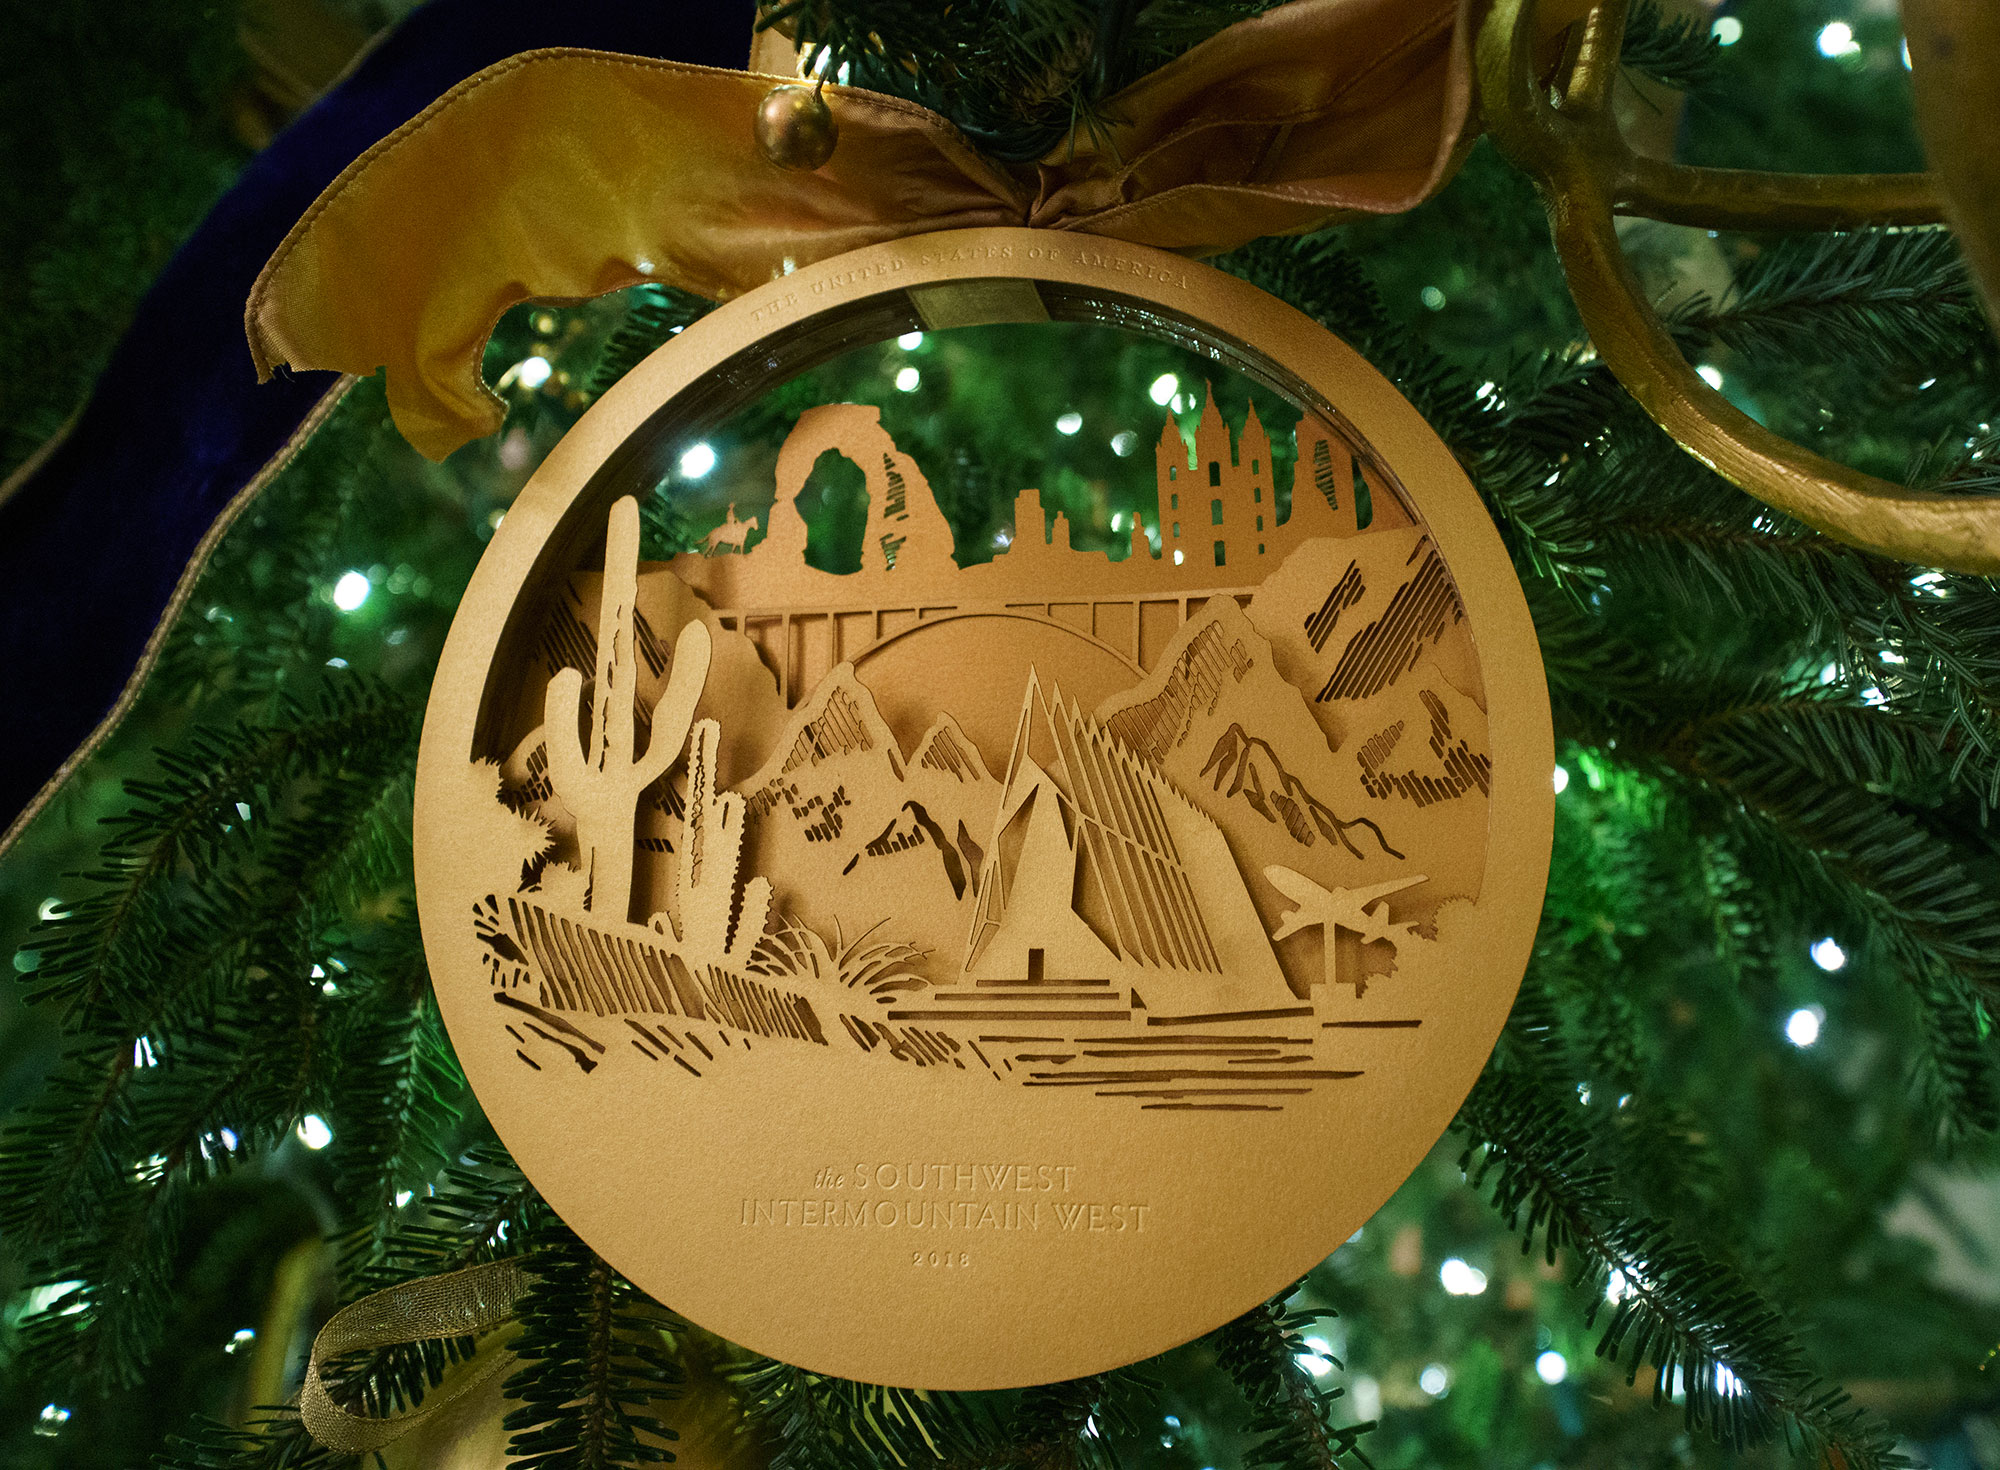 <div class='meta'><div class='origin-logo' data-origin='none'></div><span class='caption-text' data-credit='Carolyn Kaster/AP Photo'>An ornament with images of the Southwest and the Intermountain West hangs on a tree in the East Room to highlight the diversity and ingenuity of American architecture and design.</span></div>